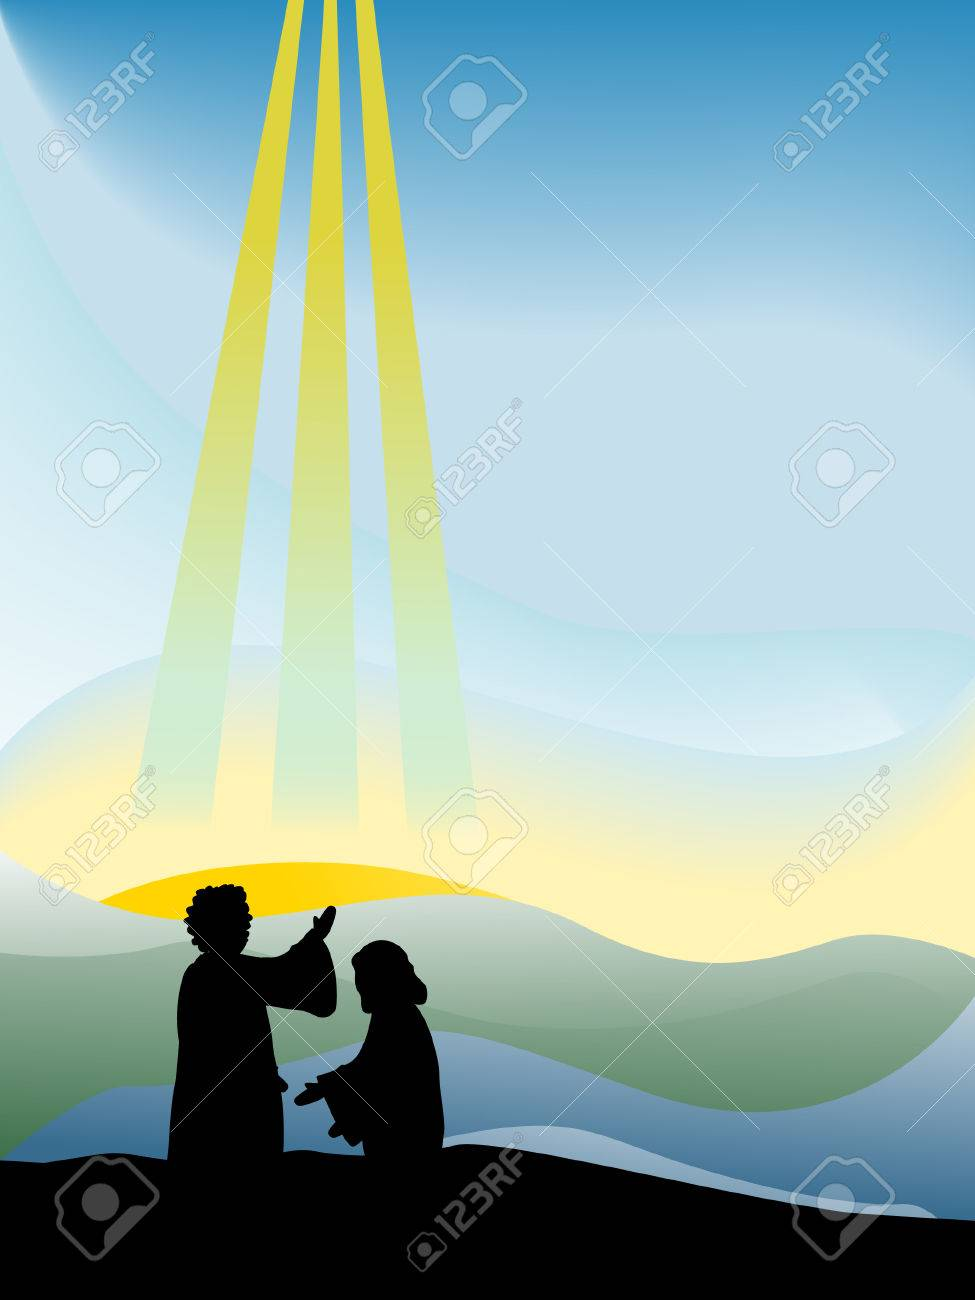 baptism of christ silhouette series royalty free cliparts vectors